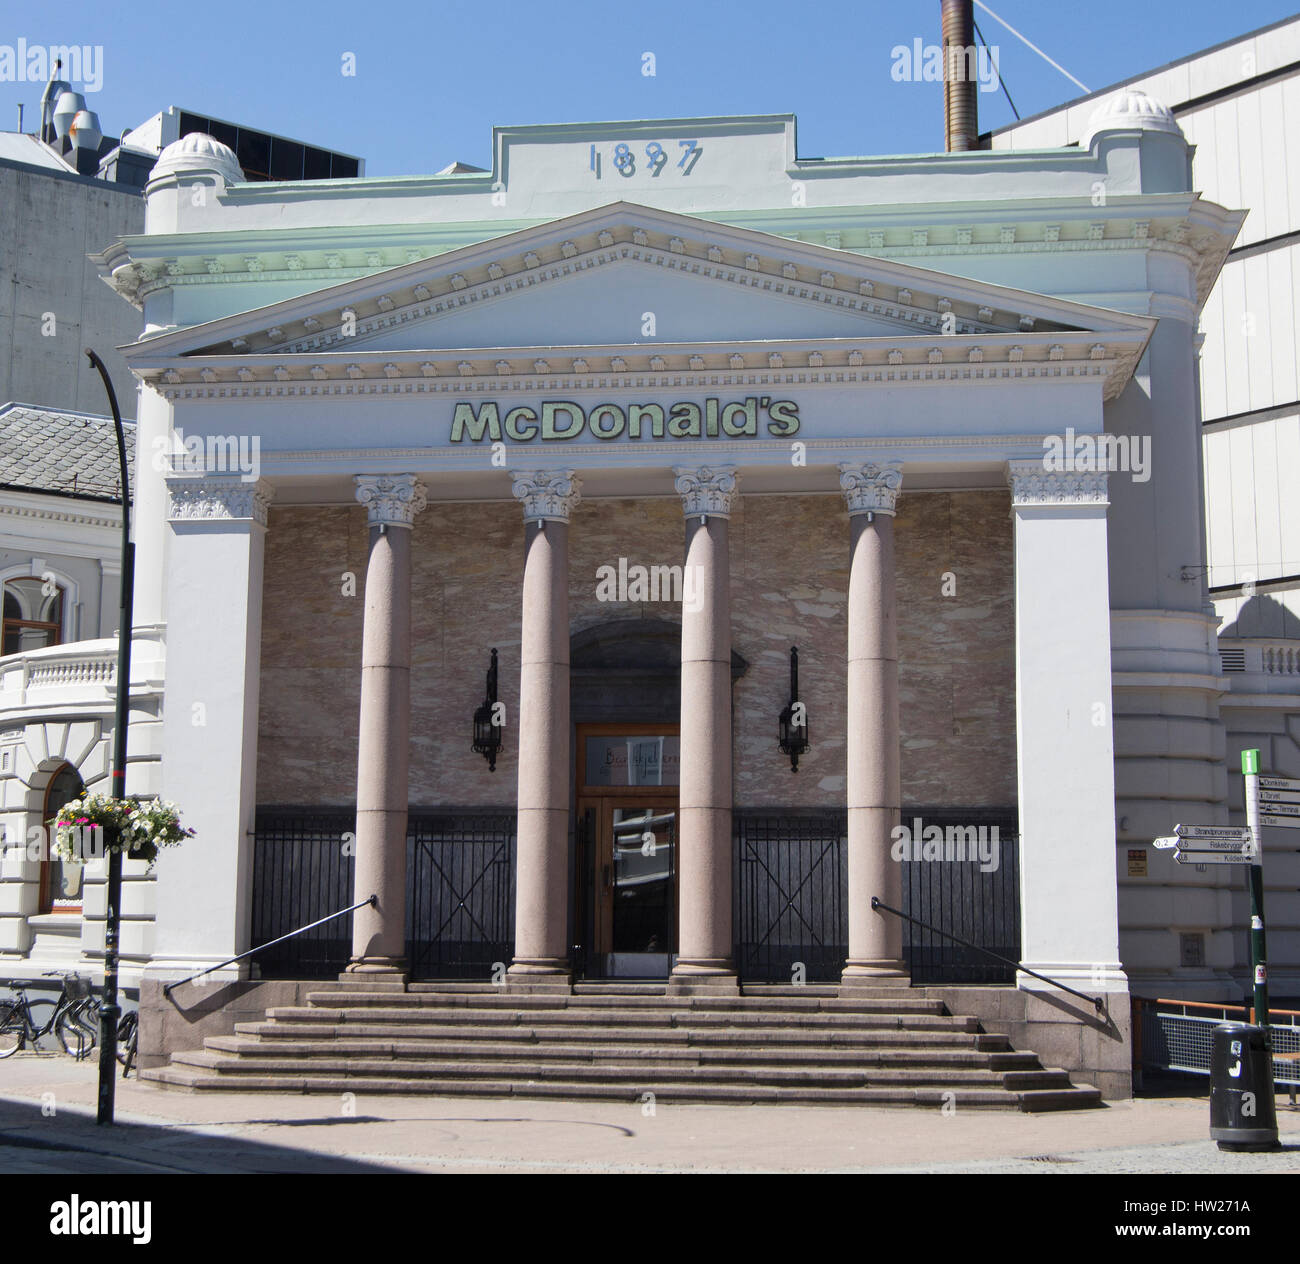 Imposing classical frontage of McDonald's in Kristiansand, Norway - Stock Image